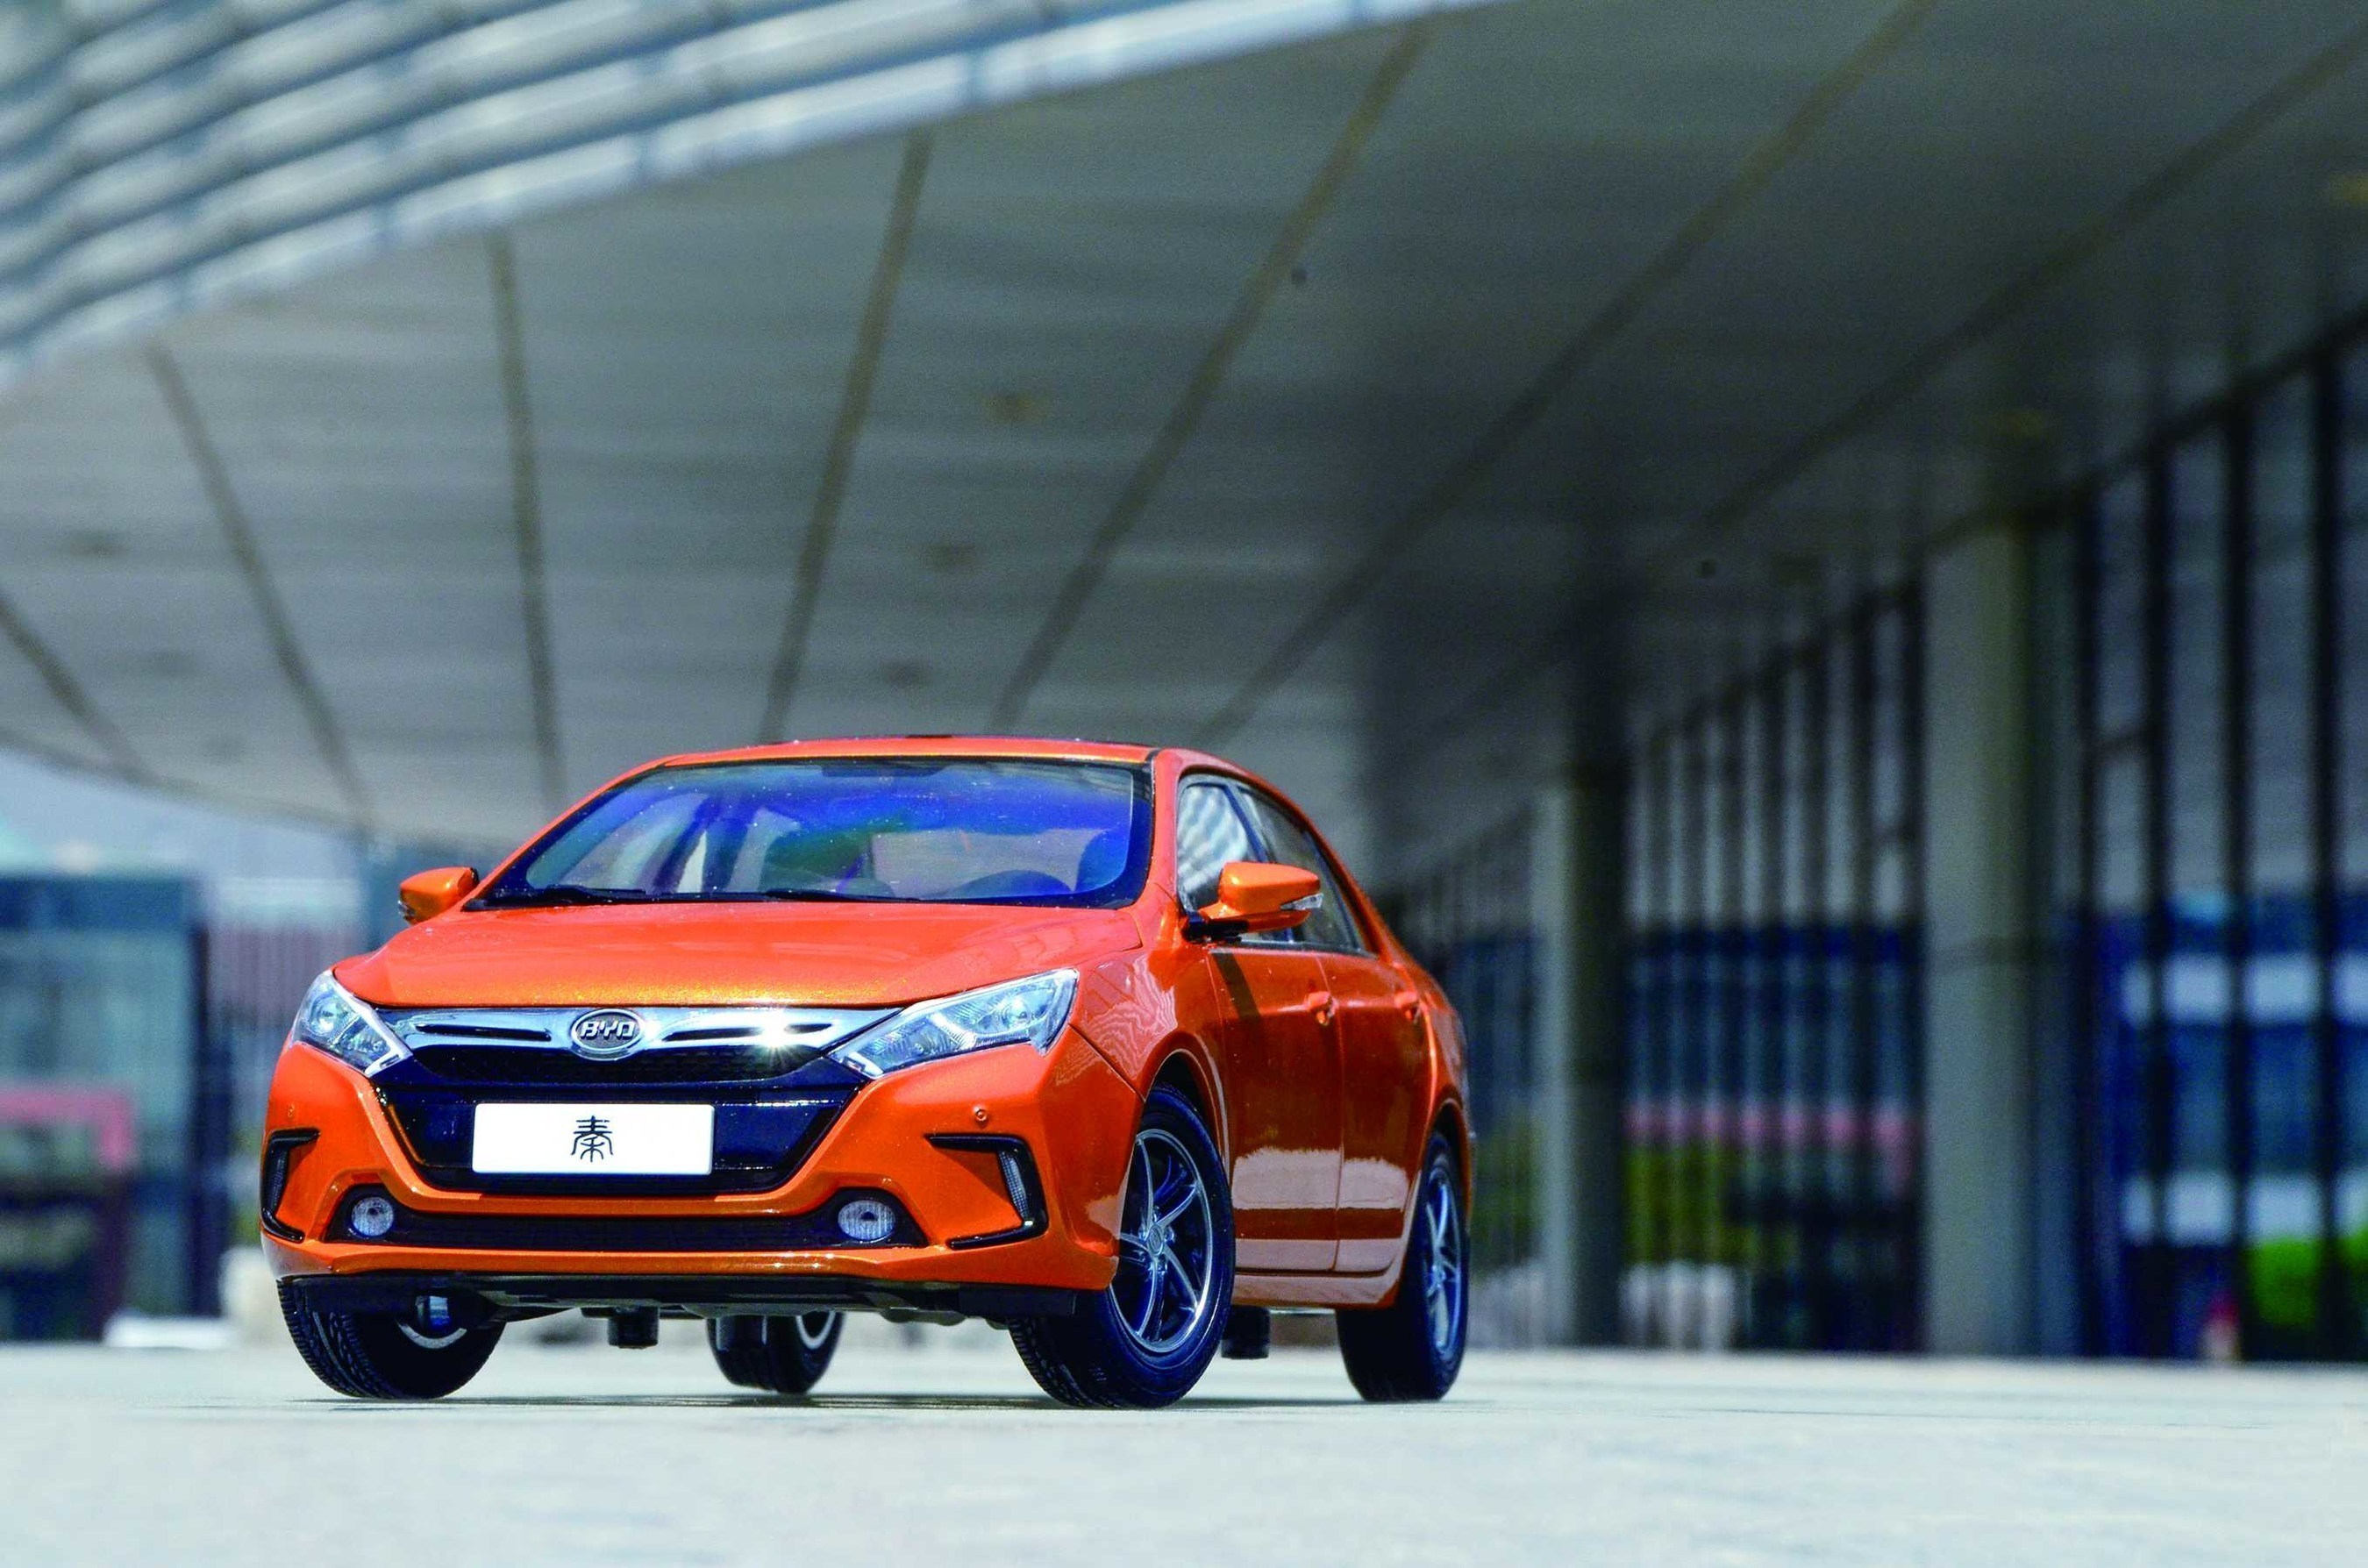 BYD Qin, the world's most popular electric vehicle